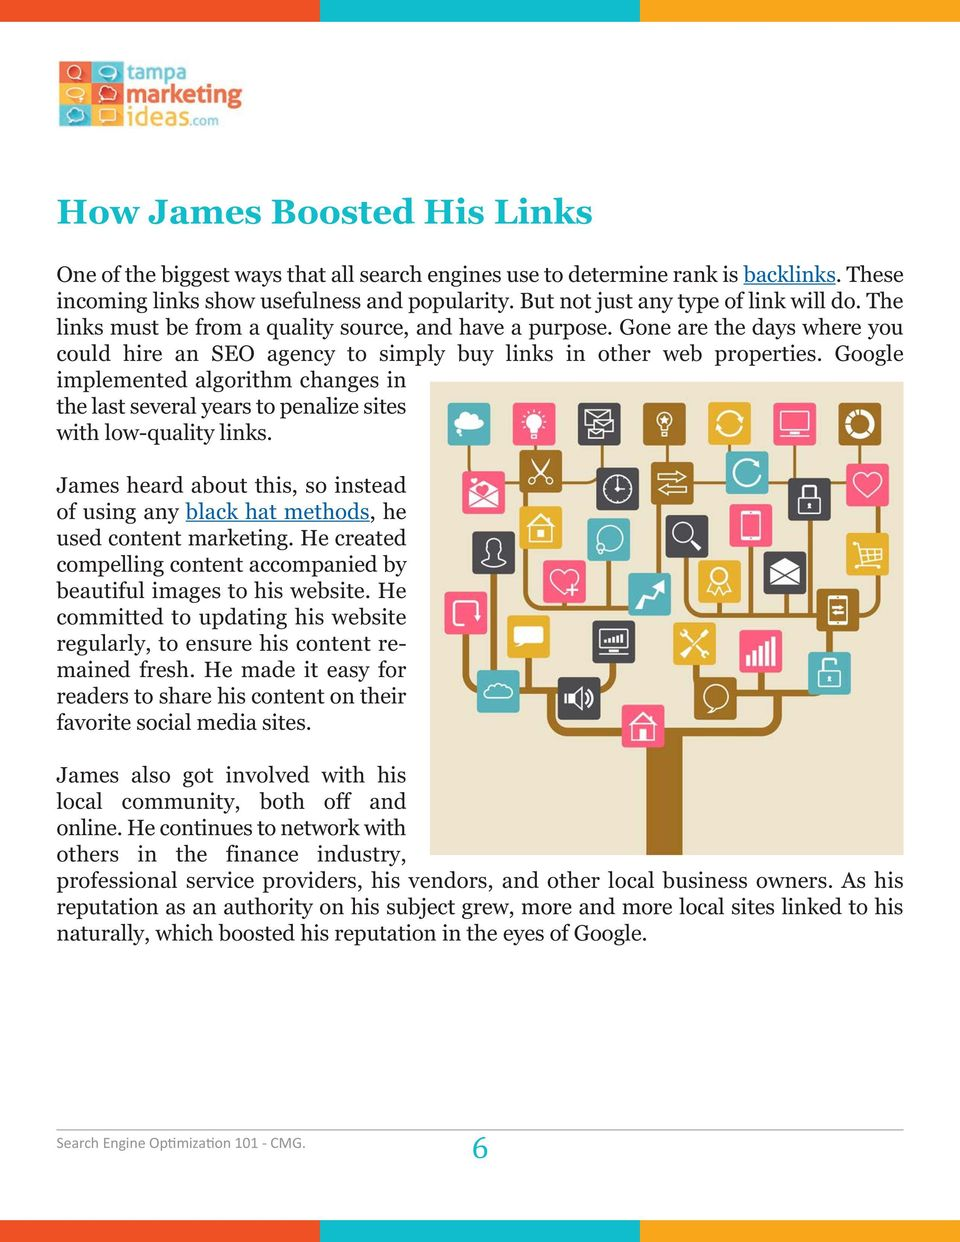 Google implemented algorithm changes in the last several years to penalize sites with low-quality links. James heard about this, so instead of using any black hat methods, he used content marketing.